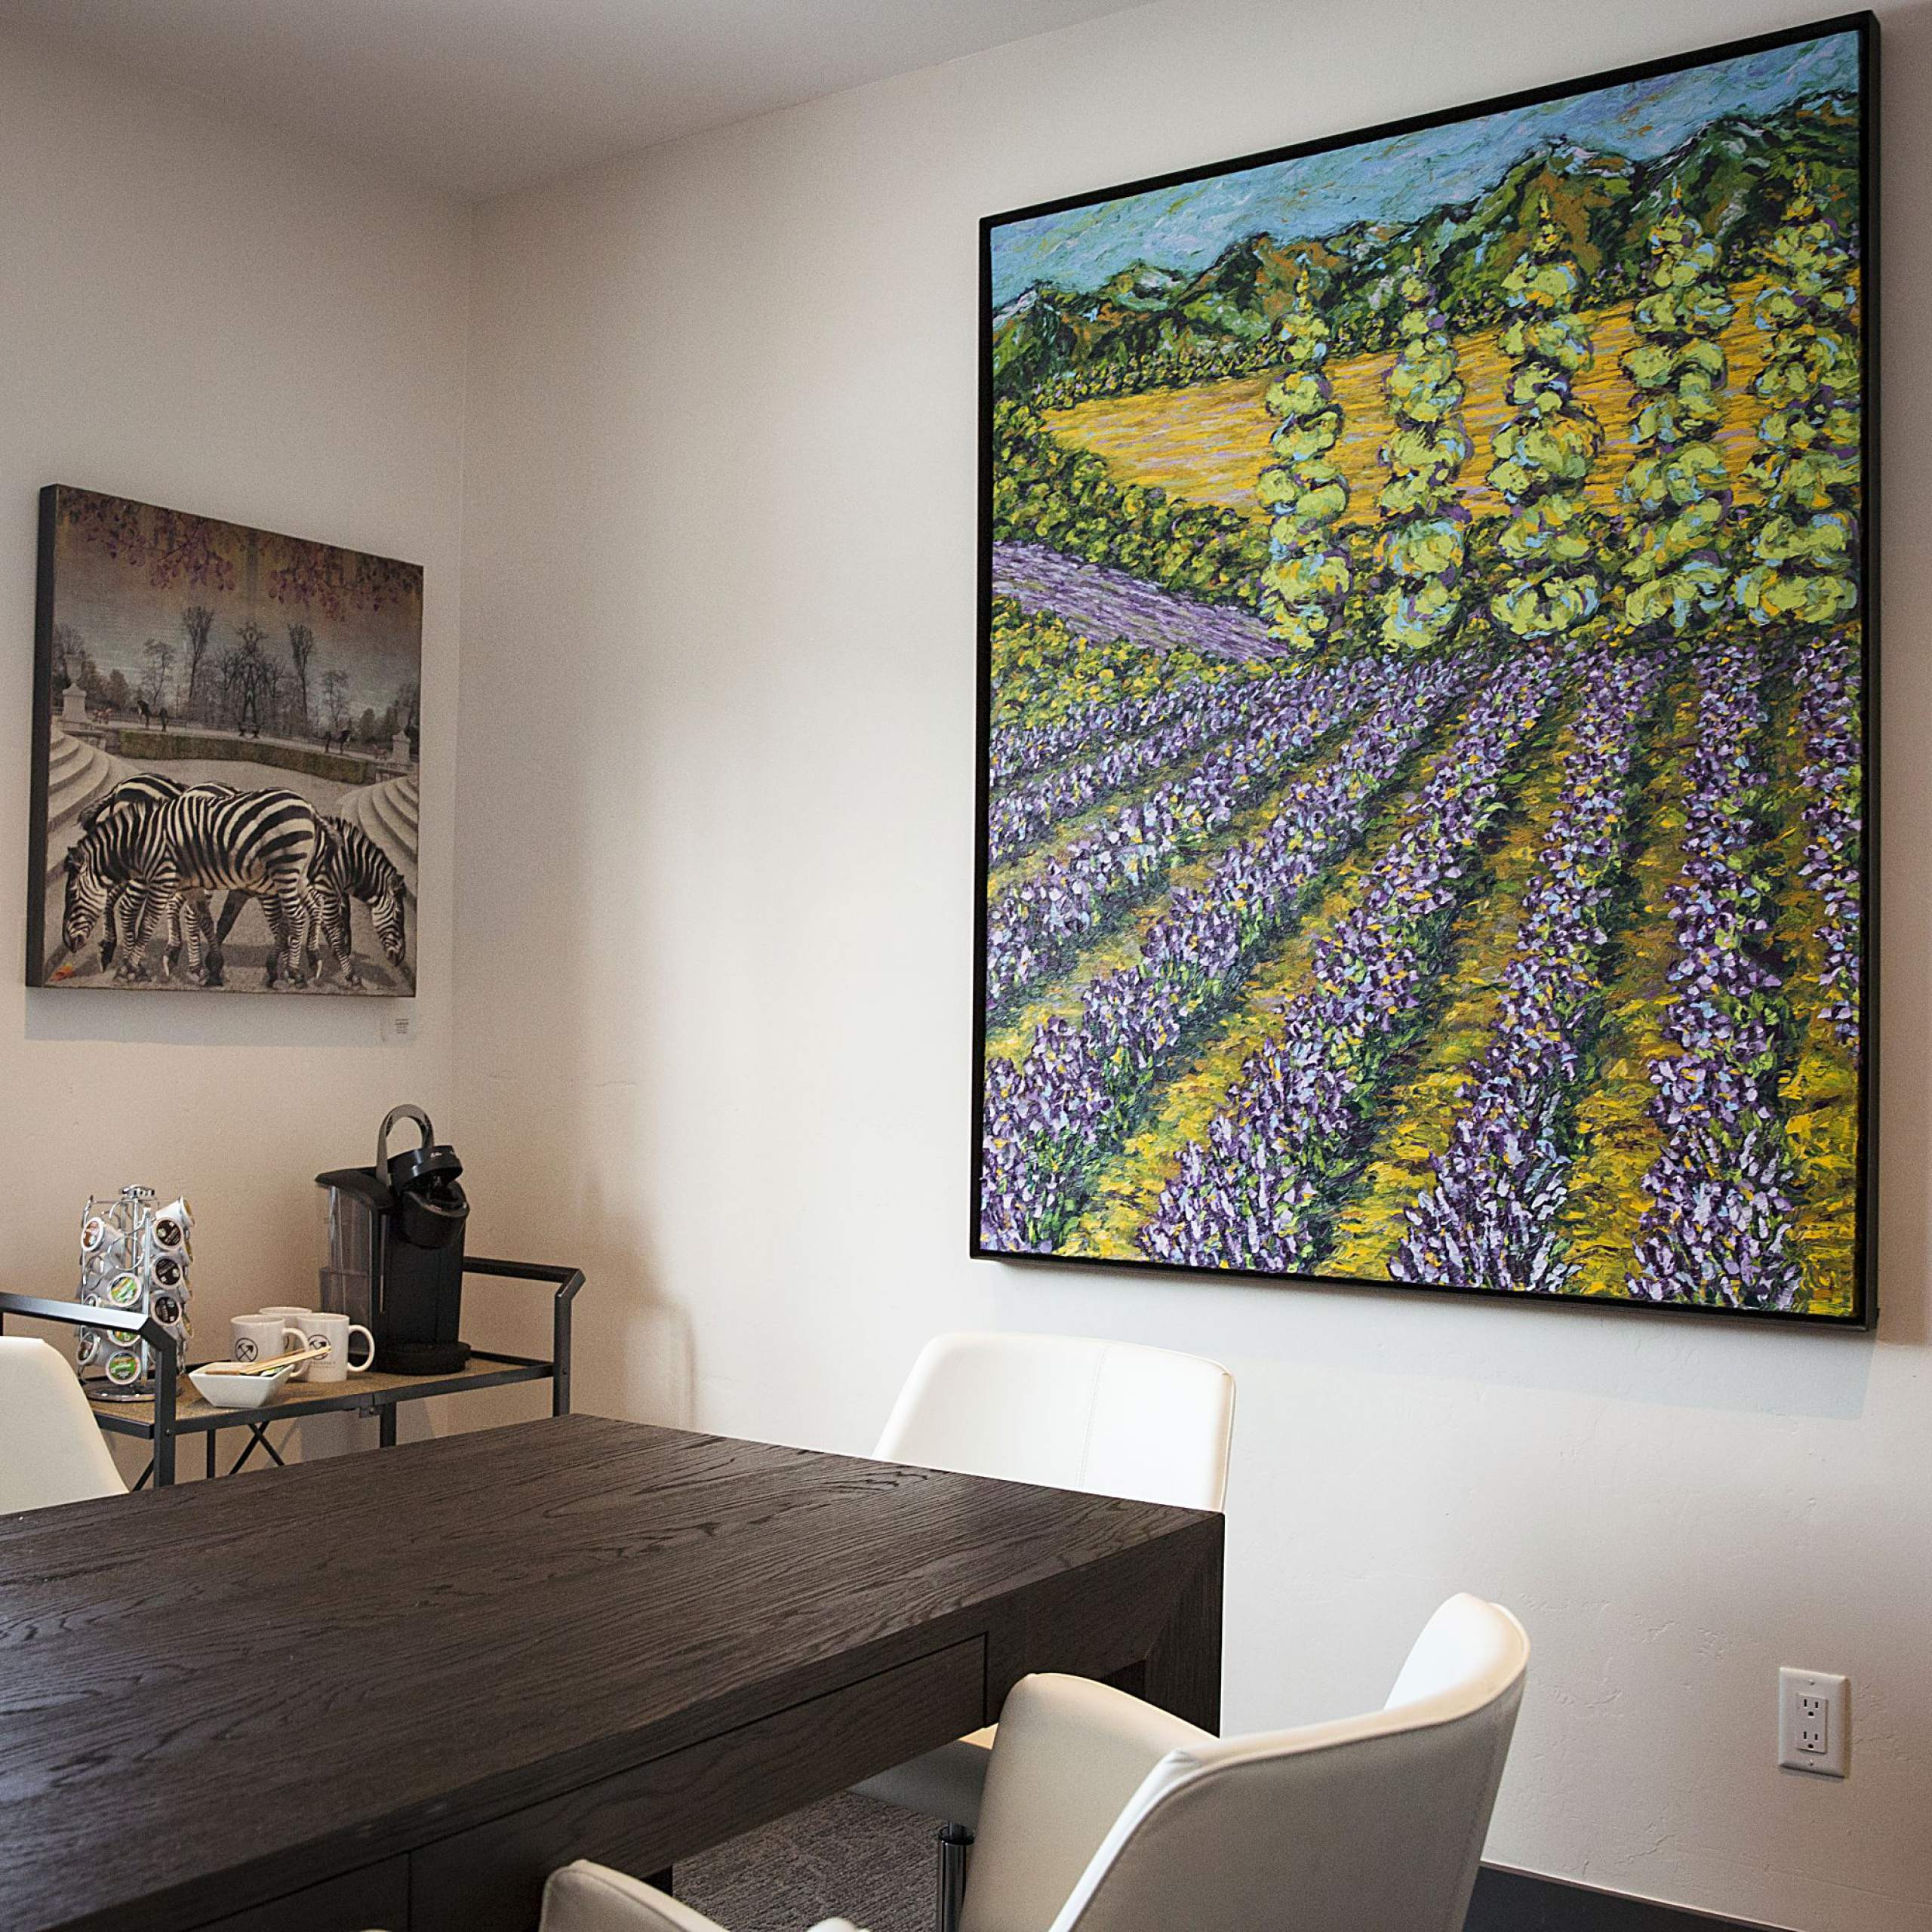 Fine art by local artists and galleries finds its way to Prospect Executive Suites